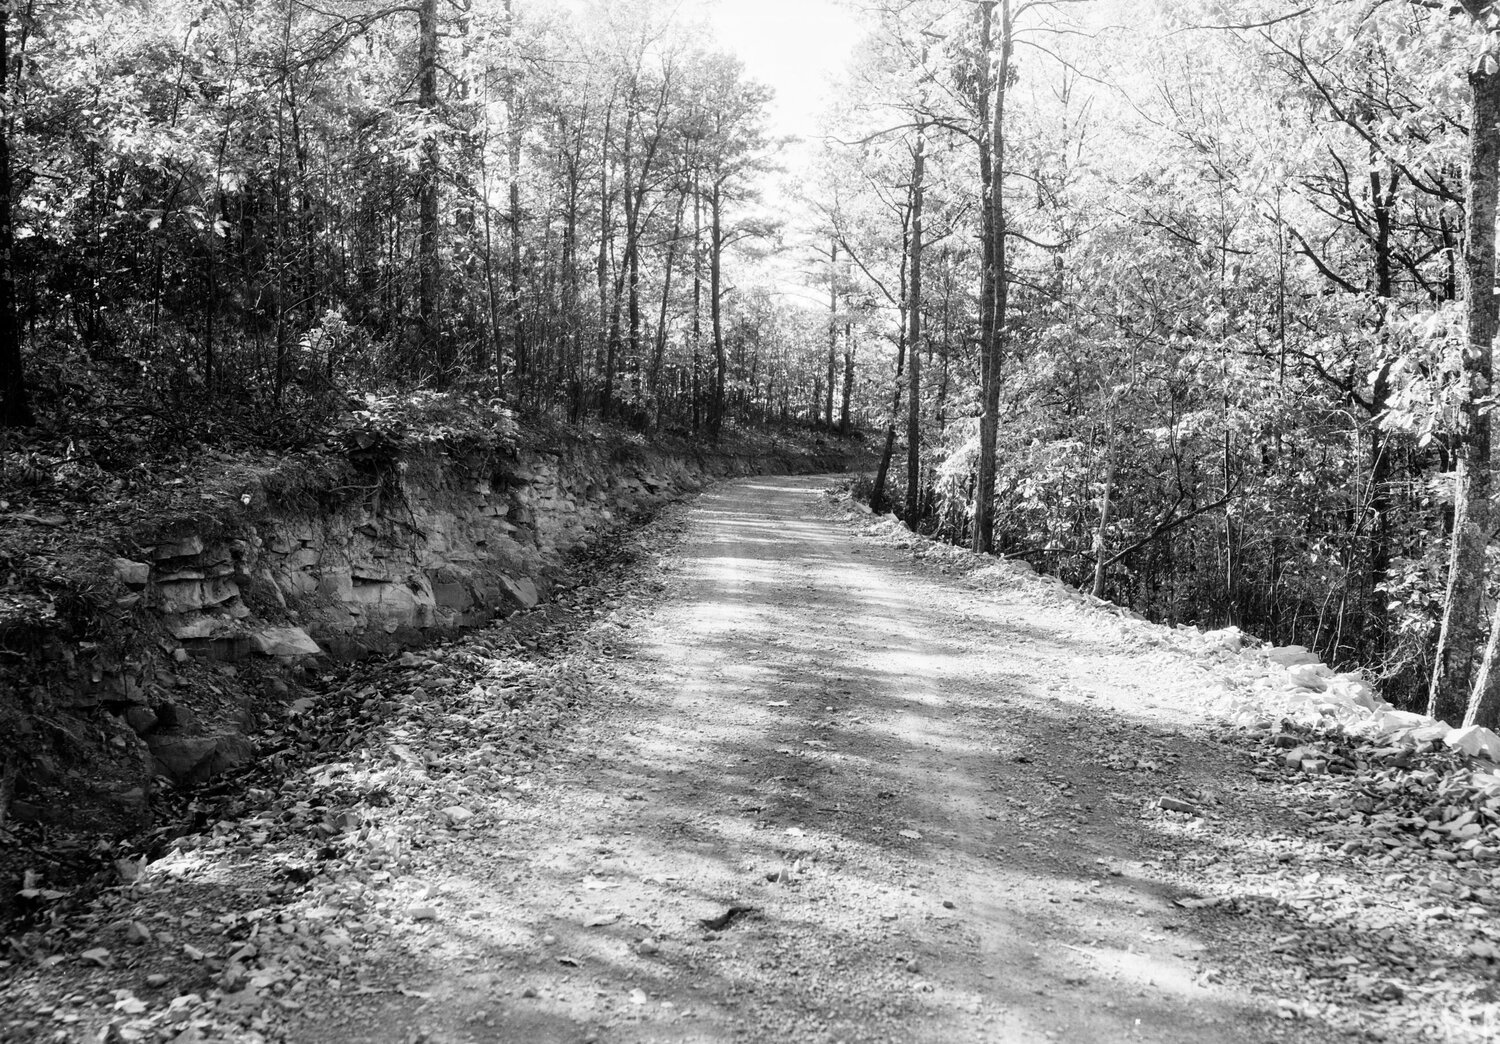 """Finished road on Mud Lick road,"" near CCC Camp Shawnee No. 2, Shawnee State Forest (November 1933)"